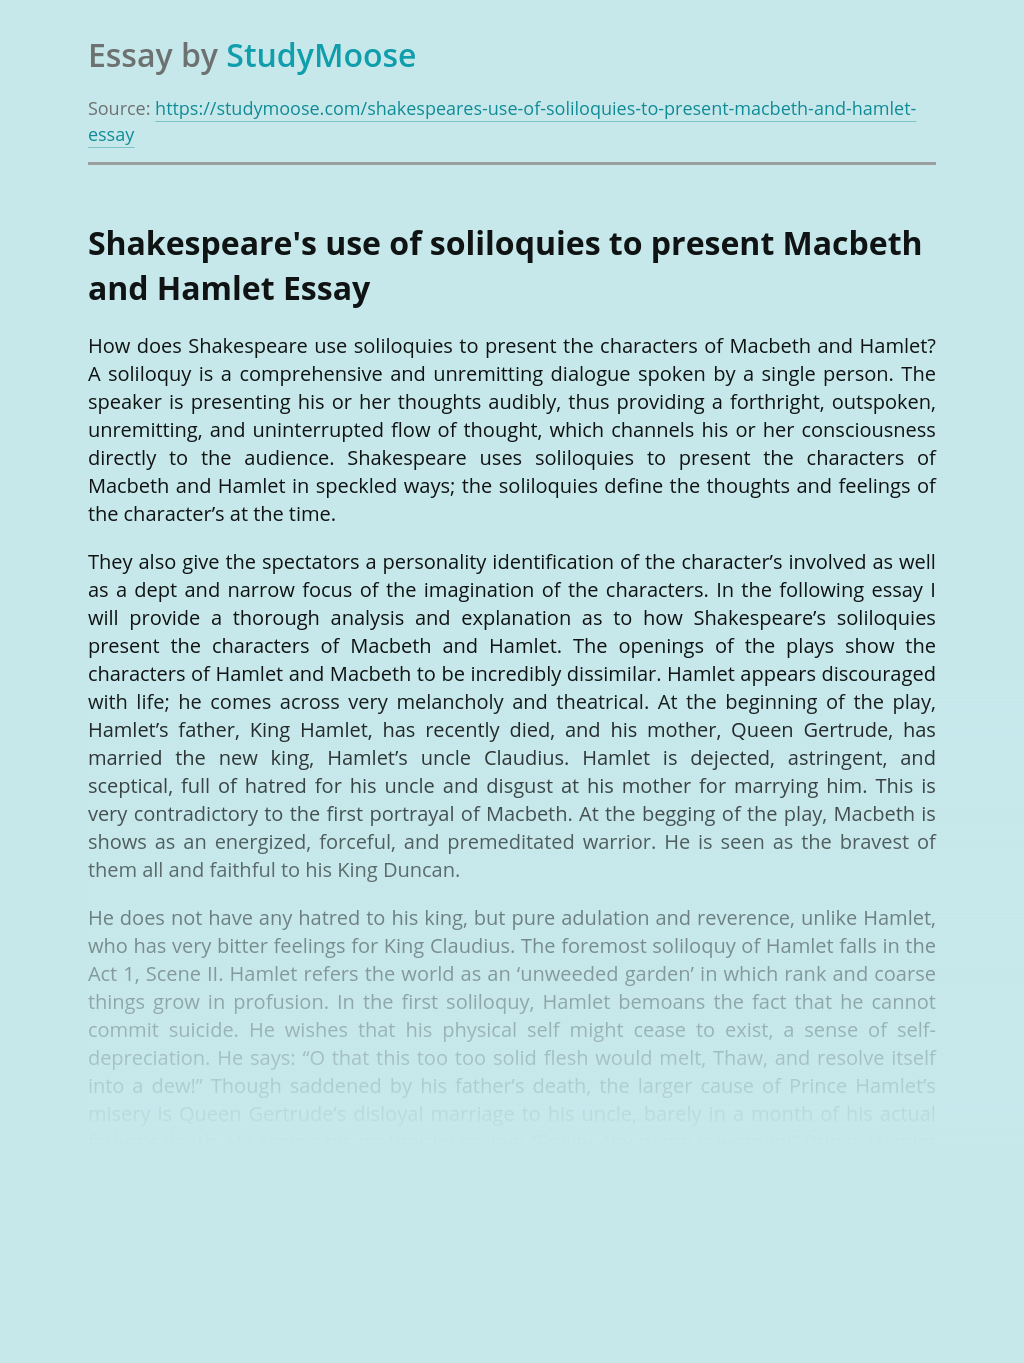 Shakespeare's use of soliloquies to present Macbeth and Hamlet